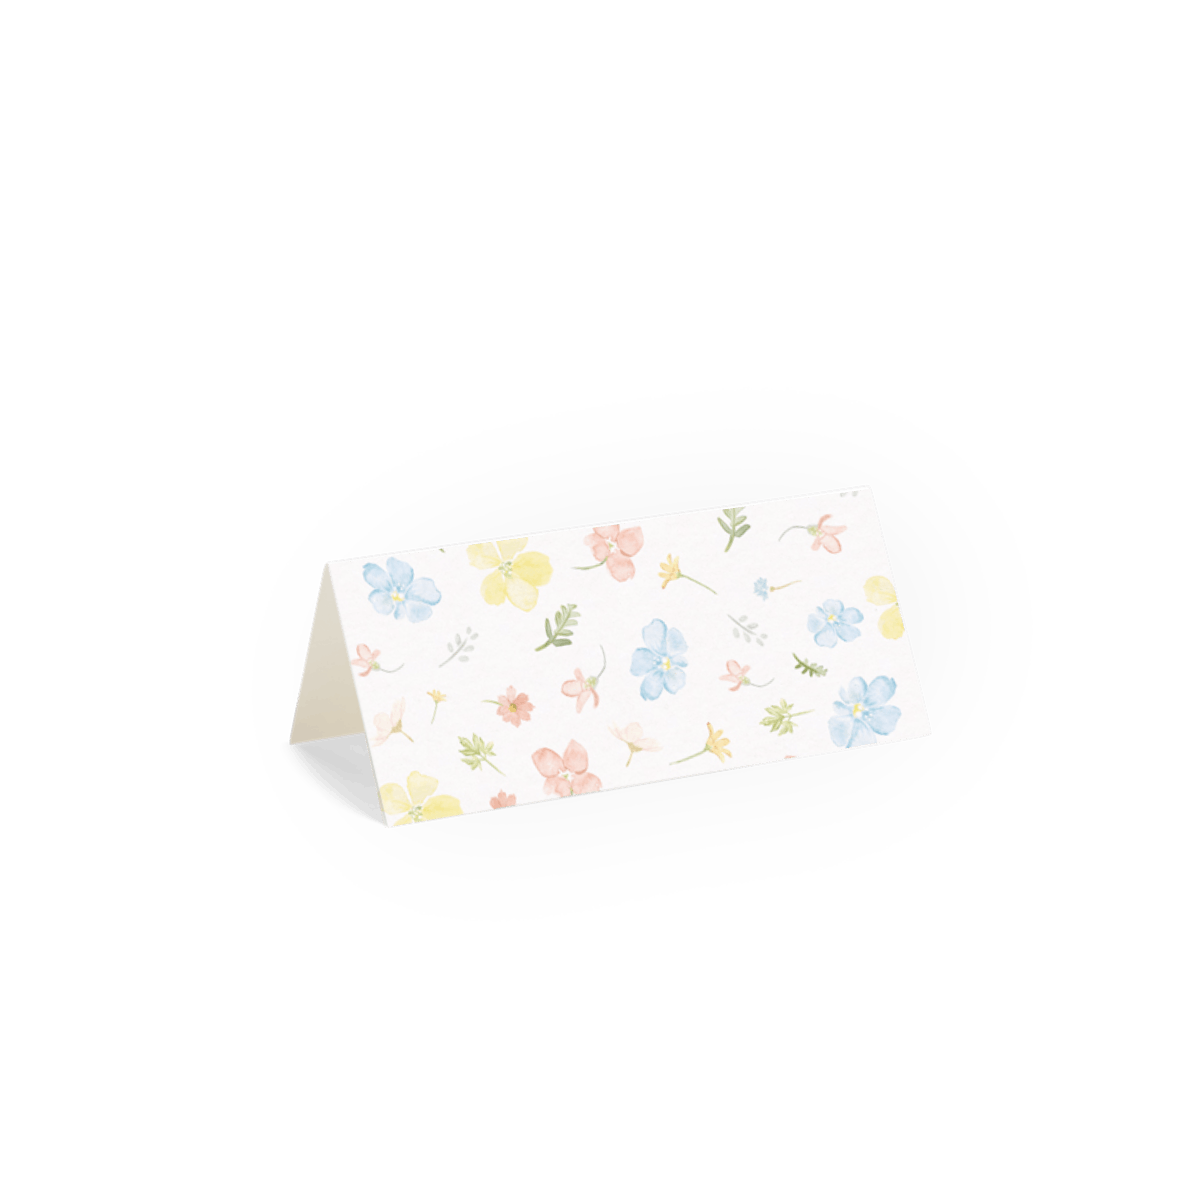 Https%3a%2f%2fwww.papier.com%2fproduct image%2f82355%2f15%2fpetite floral 19921 back 1562082706.png?ixlib=rb 1.1